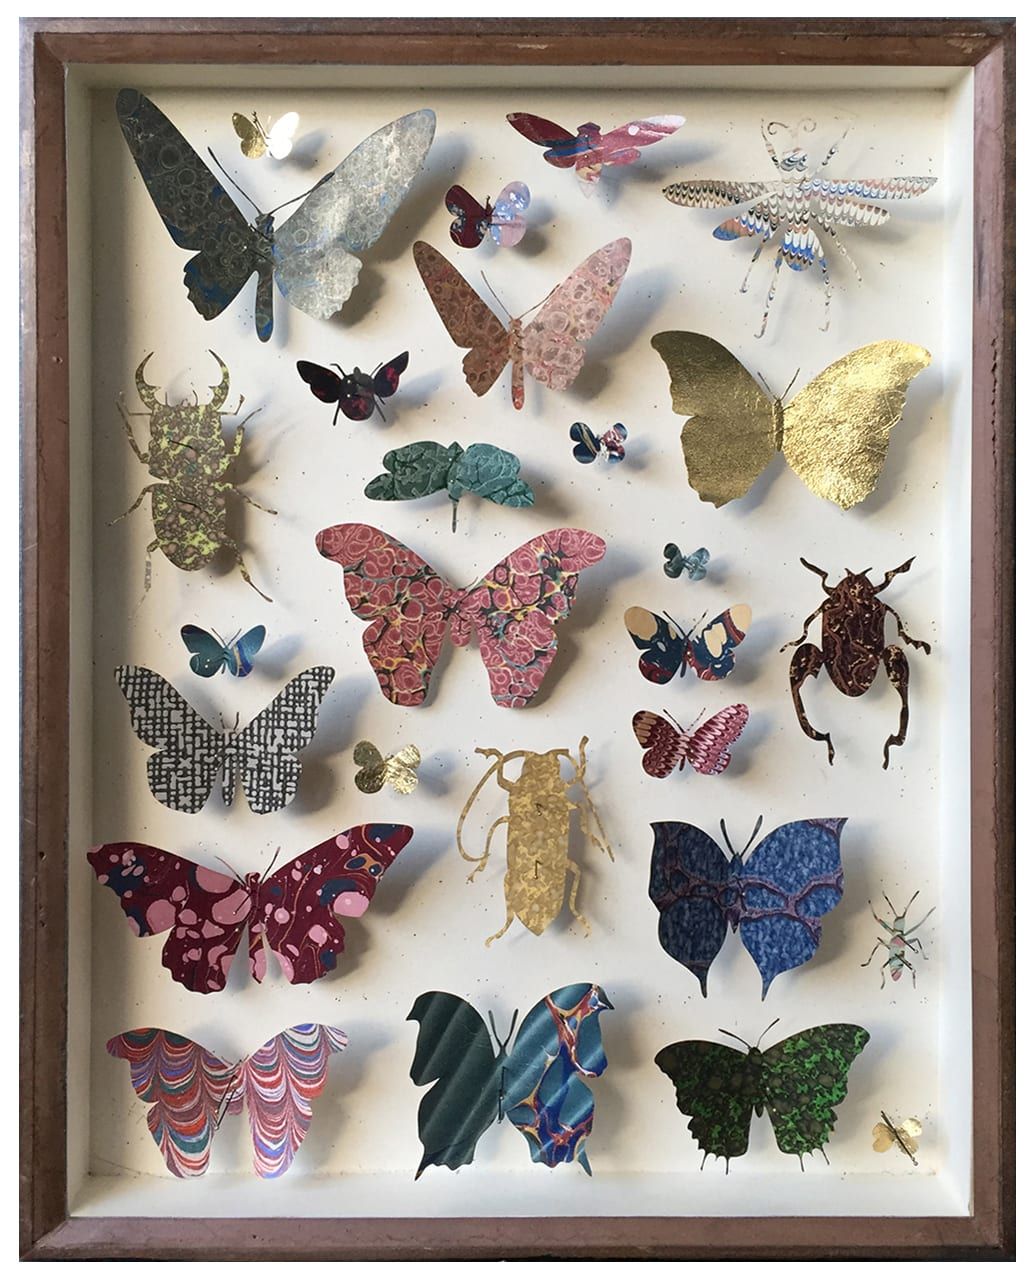 "<span class=""link fancybox-details-link""><a href=""/artists/142-helen-ward/works/6233-helen-ward-entomology-case-7-2019/"">View Detail Page</a></span><div class=""artist""><strong>Helen Ward</strong></div> <div class=""title""><em>Entomology Case 7</em>, 2019</div> <div class=""medium"">Victorian entomology drawer, hand-marbled papers, gold leaf, enamel pins</div> <div class=""dimensions"">39 x 29 cm</div><div class=""price"">£595.00</div><div class=""copyright_line"">Own Art: £ 59.50 x 10 Monthly 0% APR Representative Payments</div>"